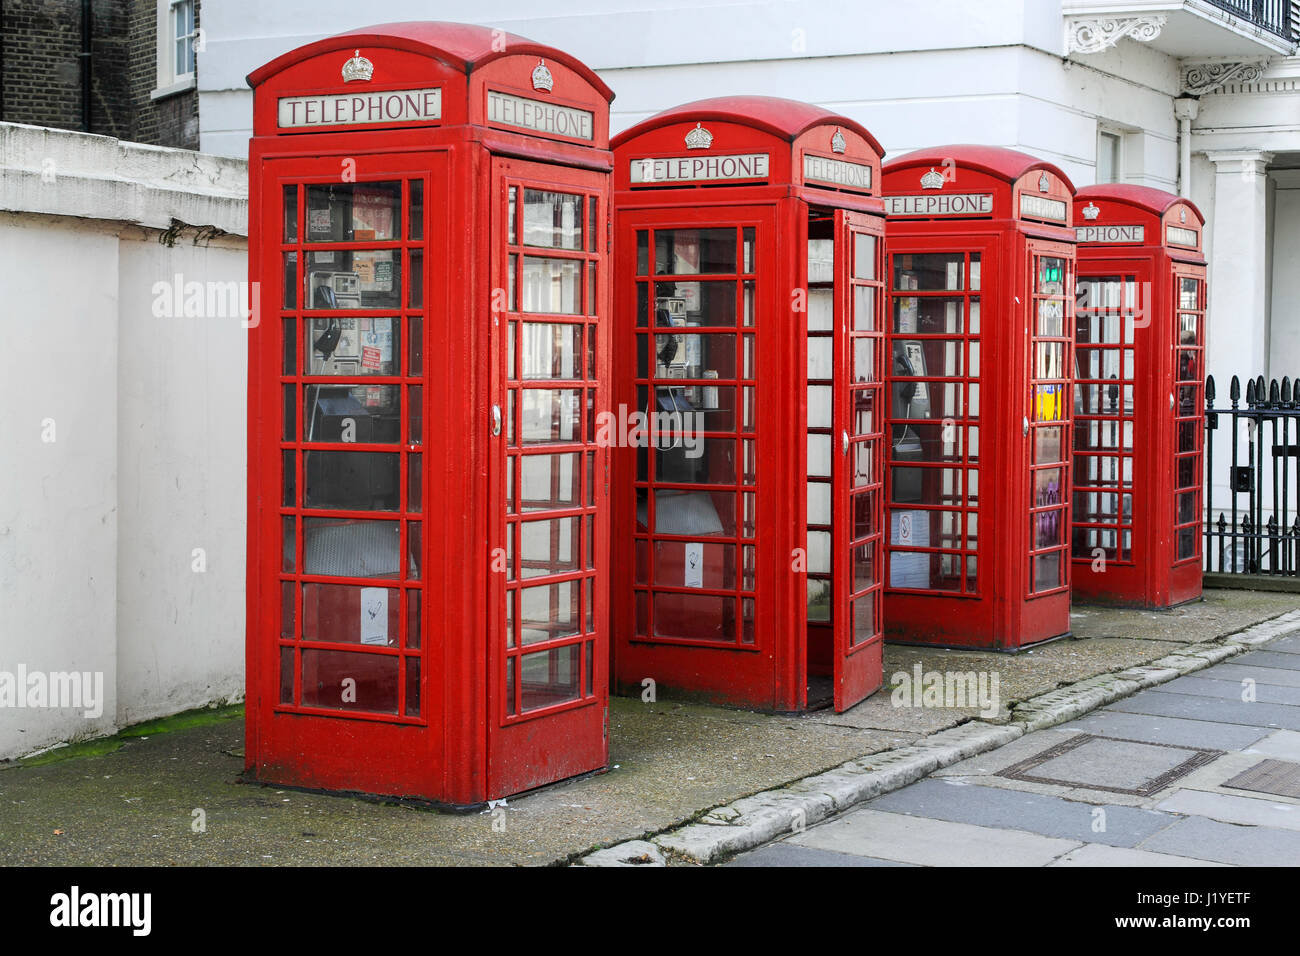 Four public red telephone boxes, or kiosks, in London - Stock Image